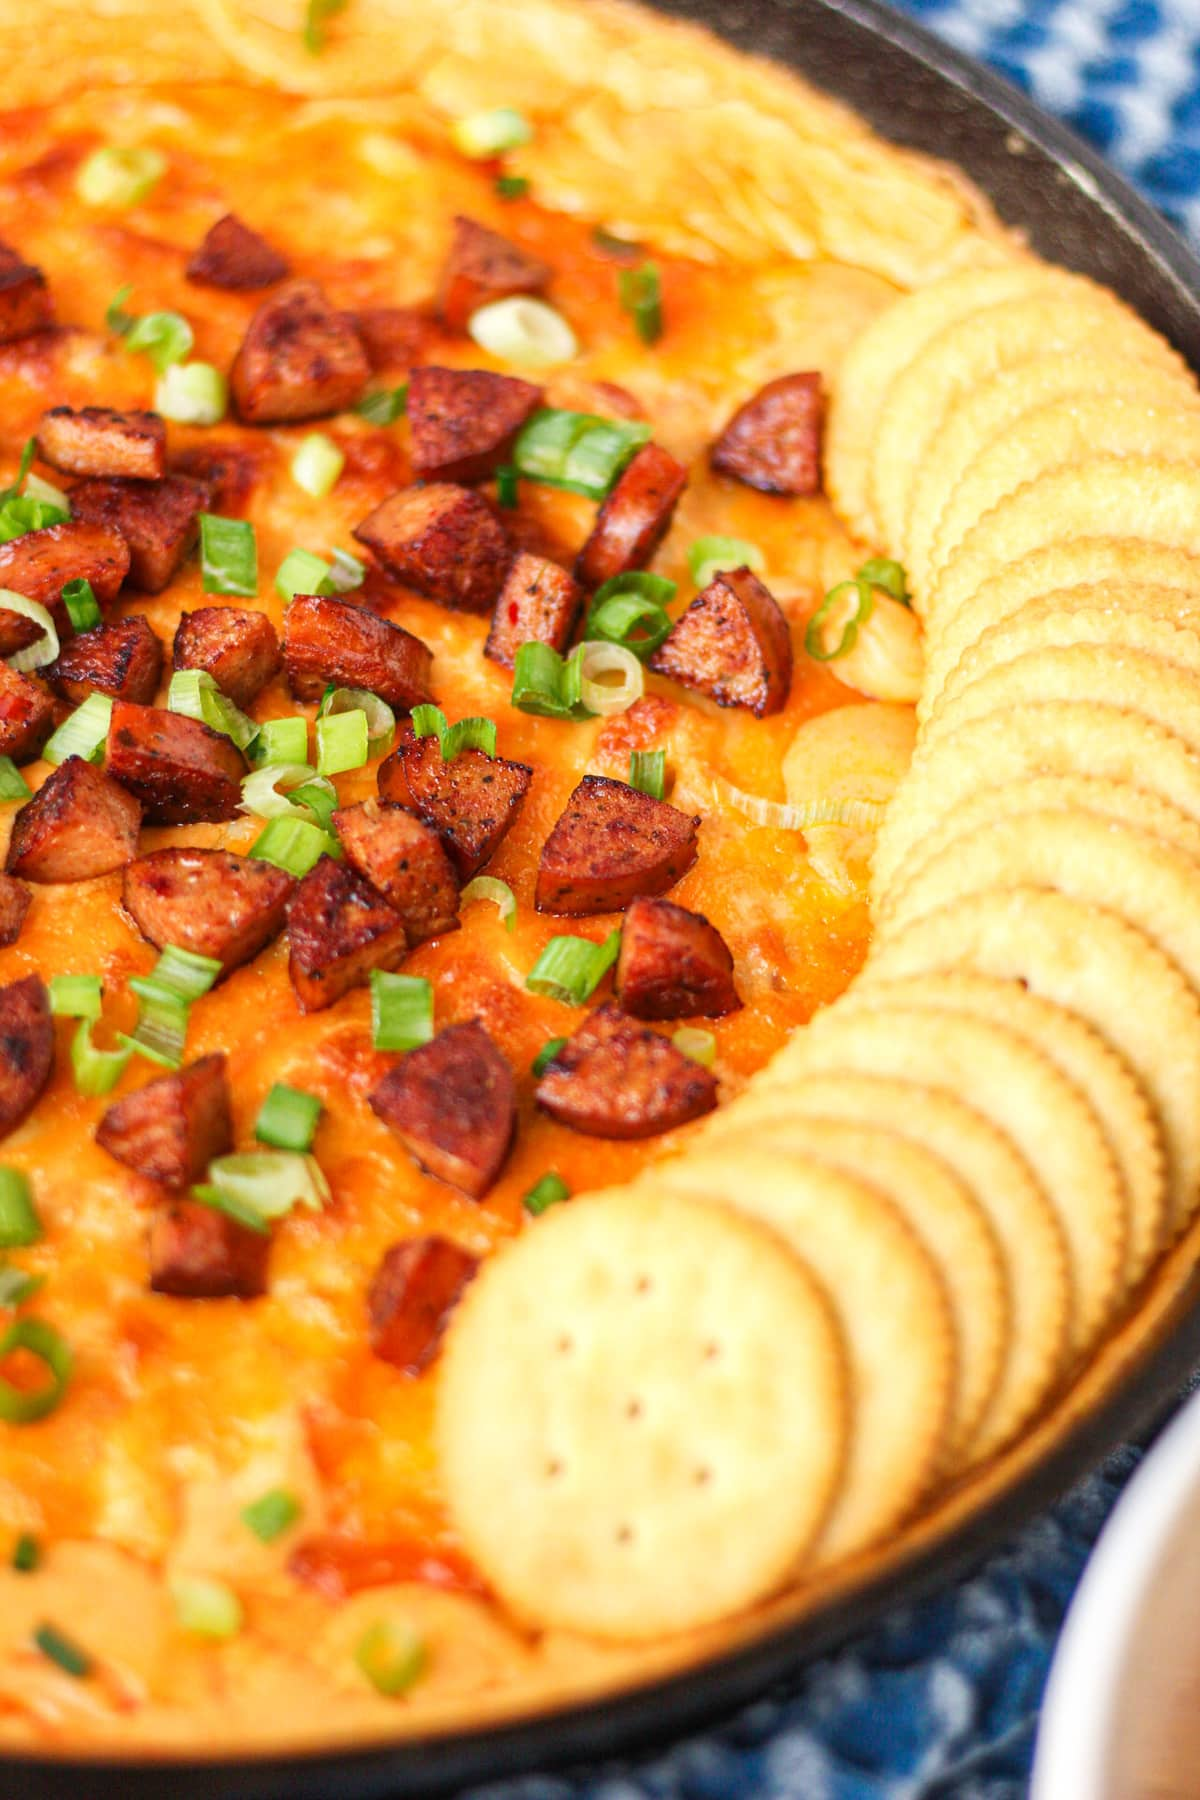 close up side angle shotof cheesy cajun chicken and sausage dip in cast iron skillet with blue towel underneath.